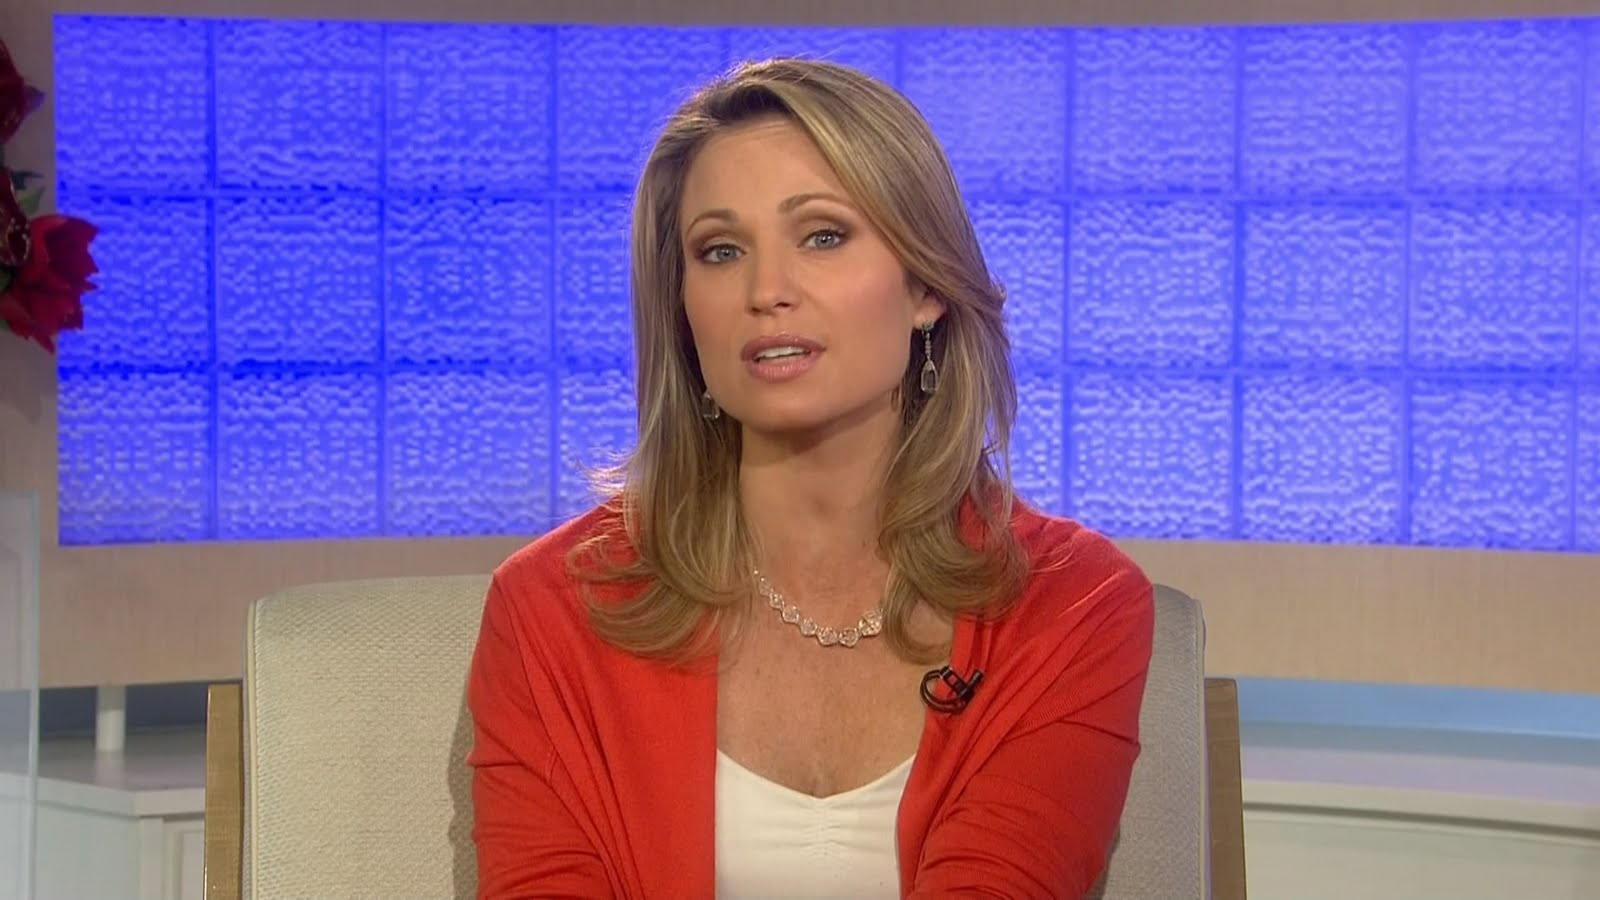 Very hot amy robach from nbc sexy leg cross